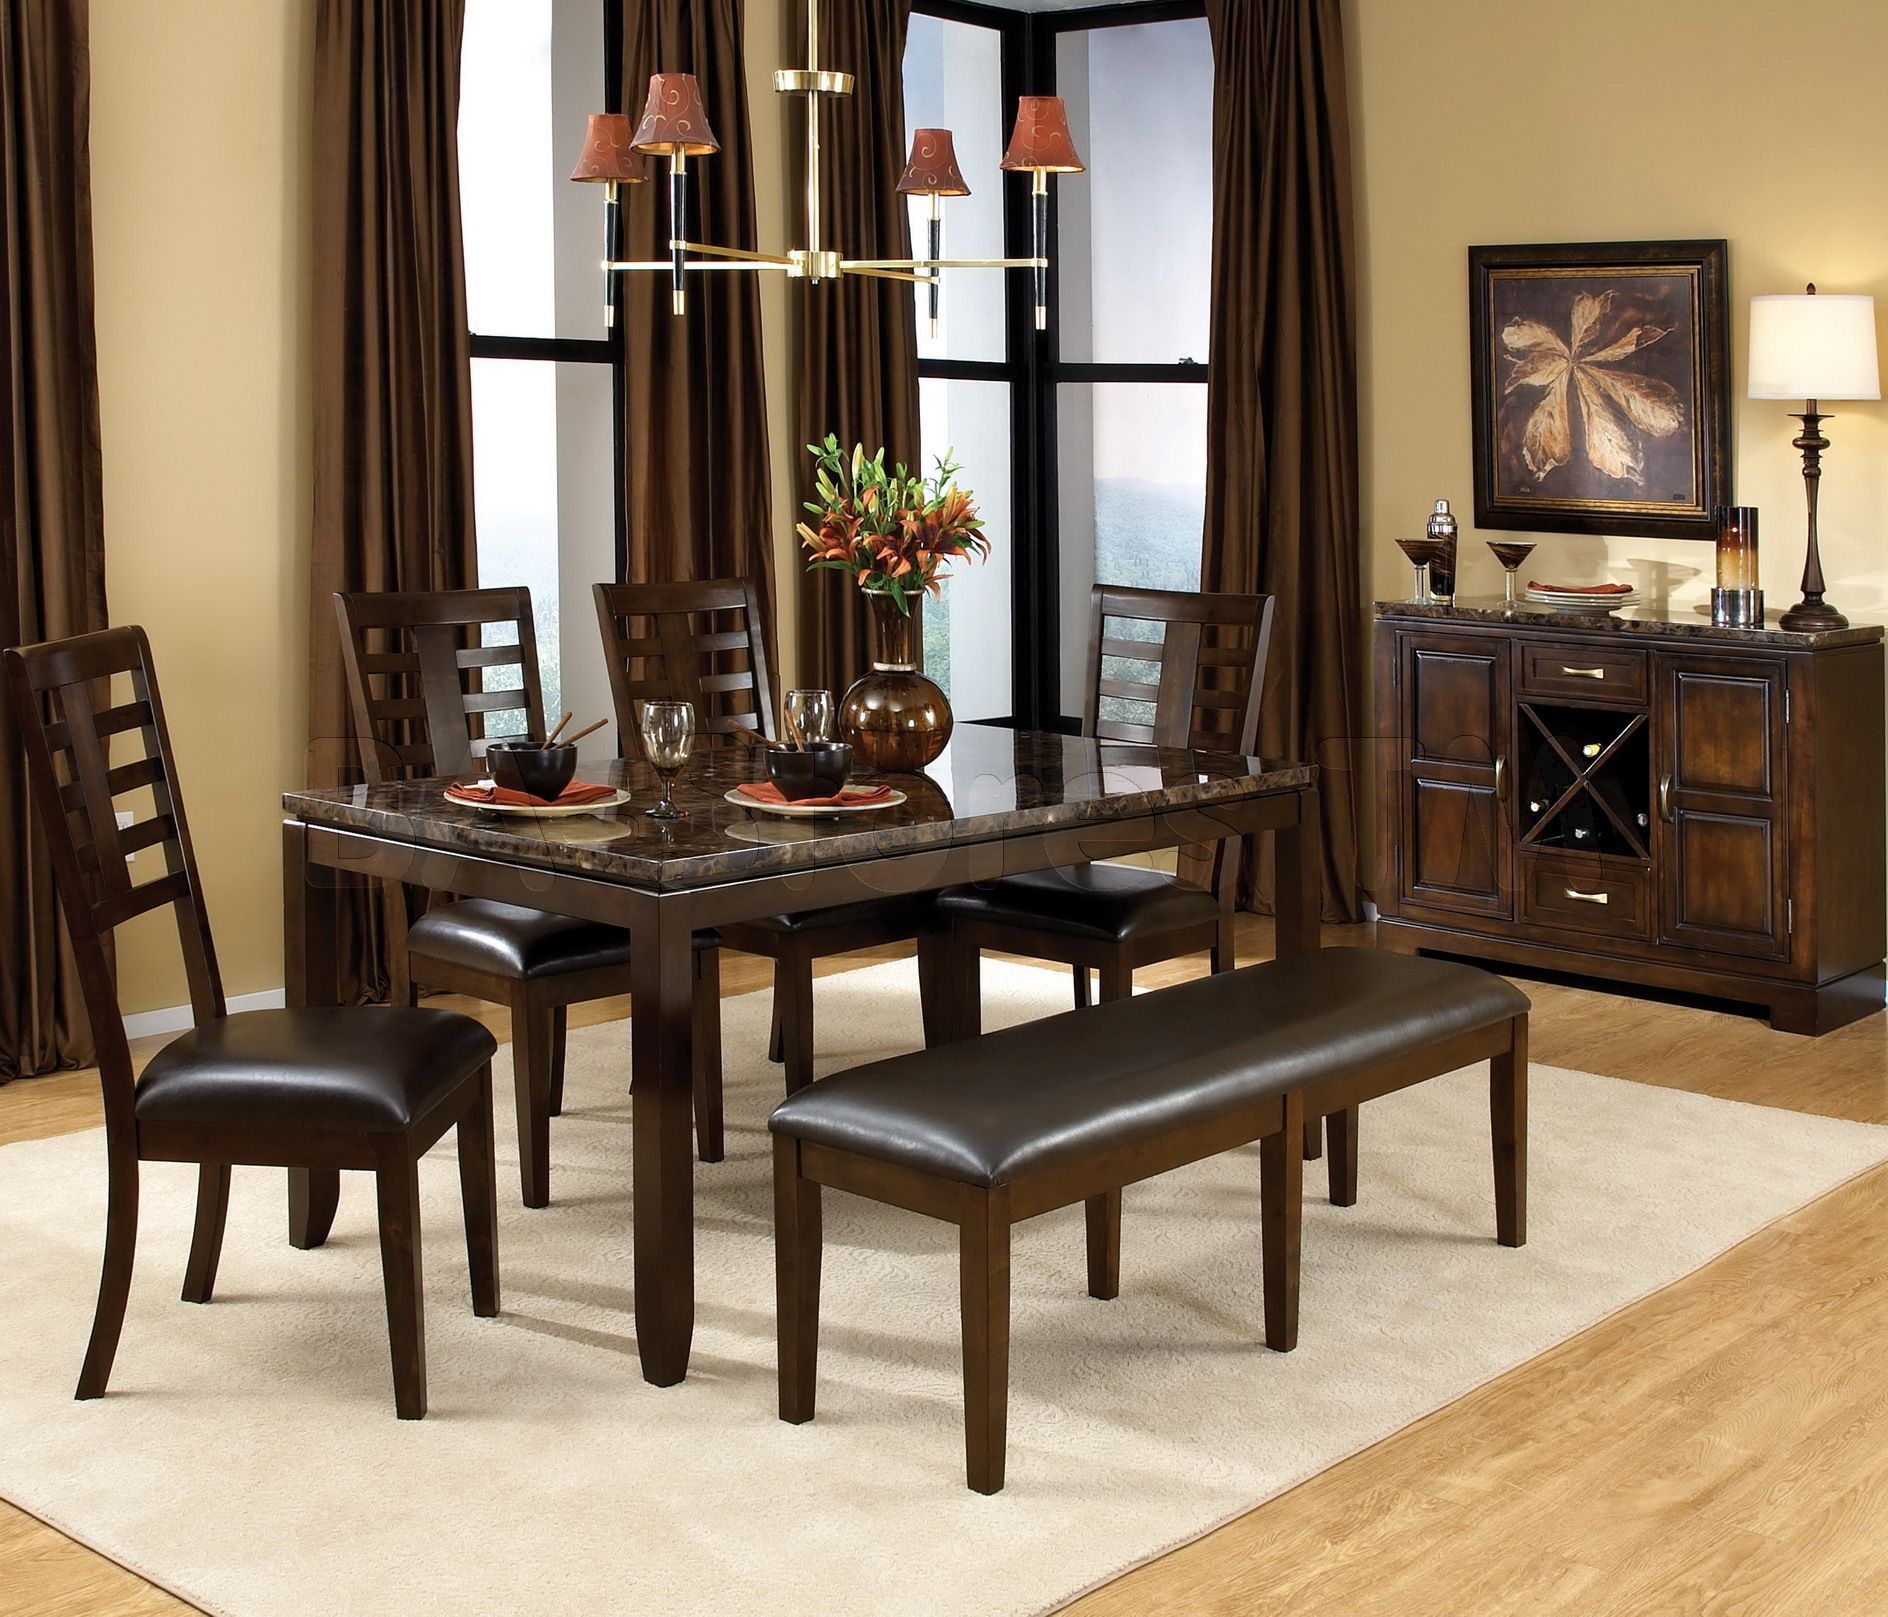 Marvelous Classic Ikea Dining Sets With Brown Color And Single ...